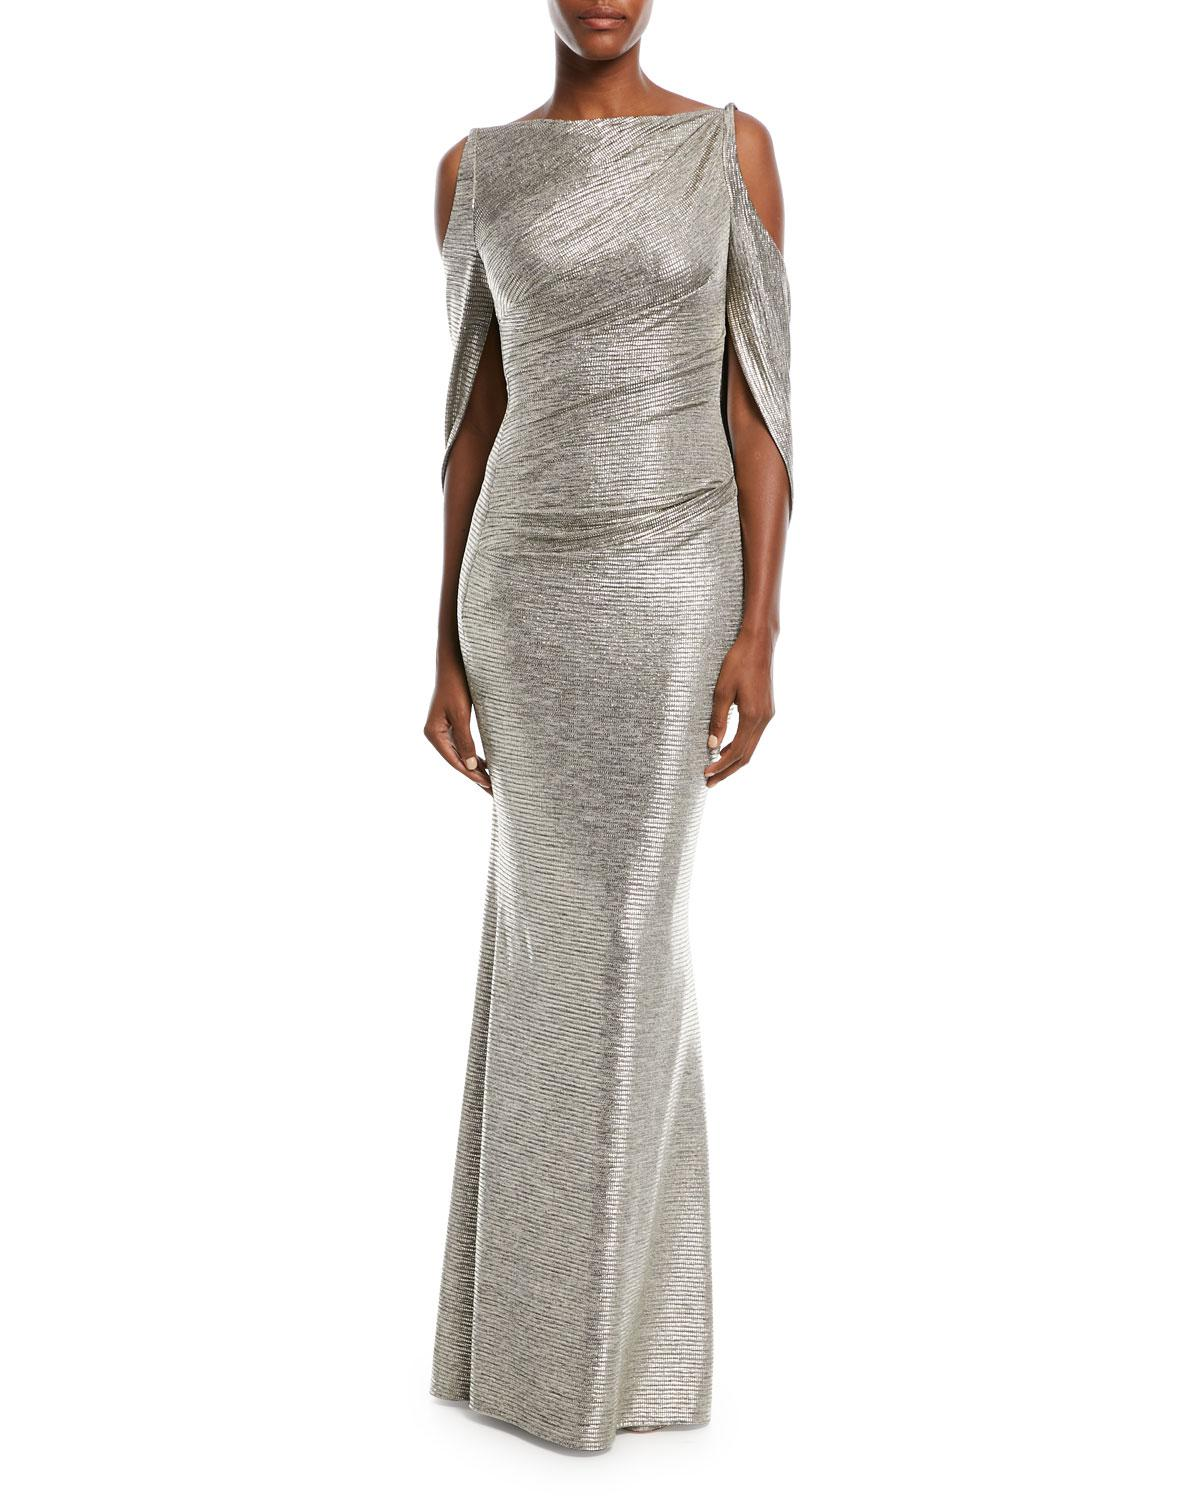 80f281bc464 Talbot Runhof Ponceau Metallic Cold-shoulder Gown in Metallic - Lyst